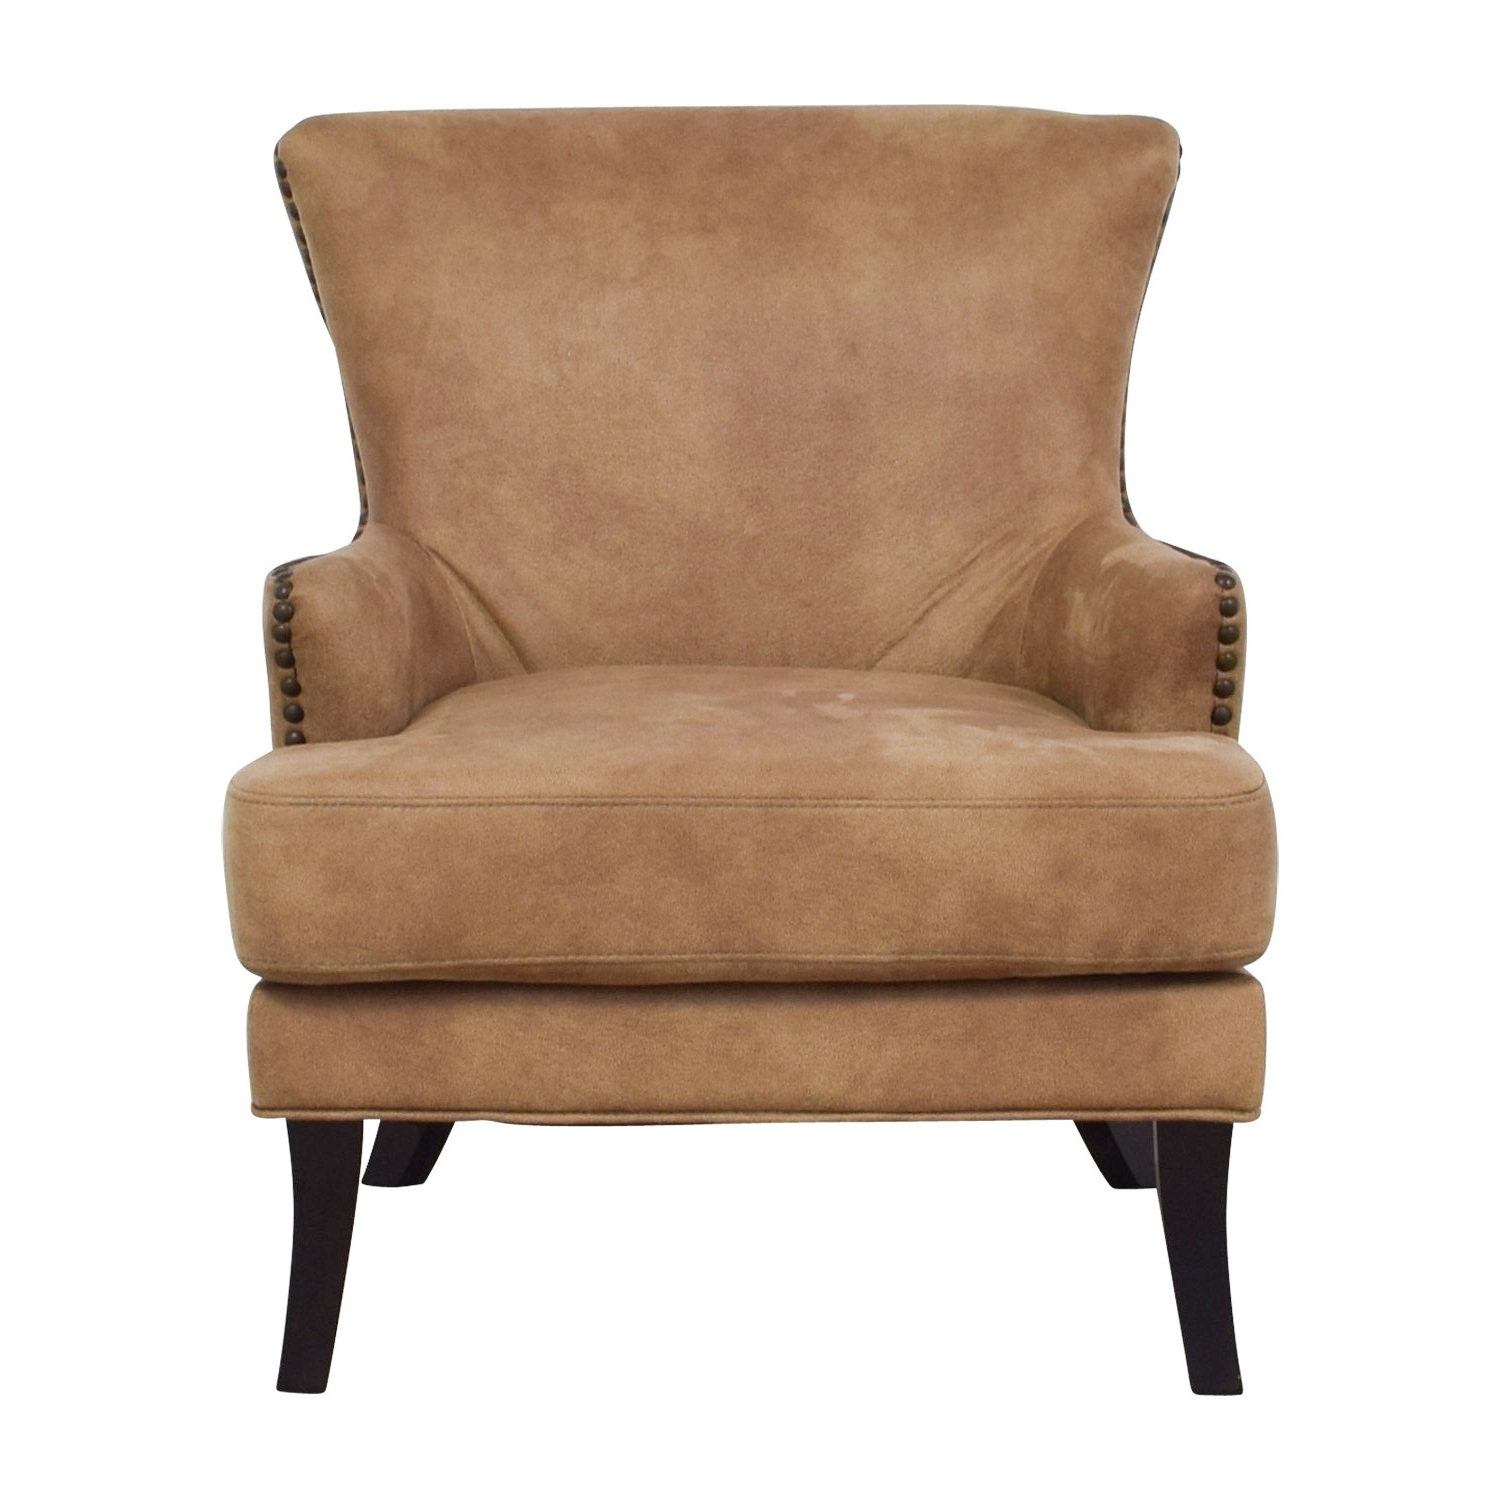 [%90% Off – Joss & Main Joss & Main Nola Brown Nailhead Arm Chair / Chairs With Regard To Most Popular Joss Side Chairs|Joss Side Chairs With Regard To 2017 90% Off – Joss & Main Joss & Main Nola Brown Nailhead Arm Chair / Chairs|Well Liked Joss Side Chairs In 90% Off – Joss & Main Joss & Main Nola Brown Nailhead Arm Chair / Chairs|Fashionable 90% Off – Joss & Main Joss & Main Nola Brown Nailhead Arm Chair / Chairs Intended For Joss Side Chairs%] (View 2 of 20)